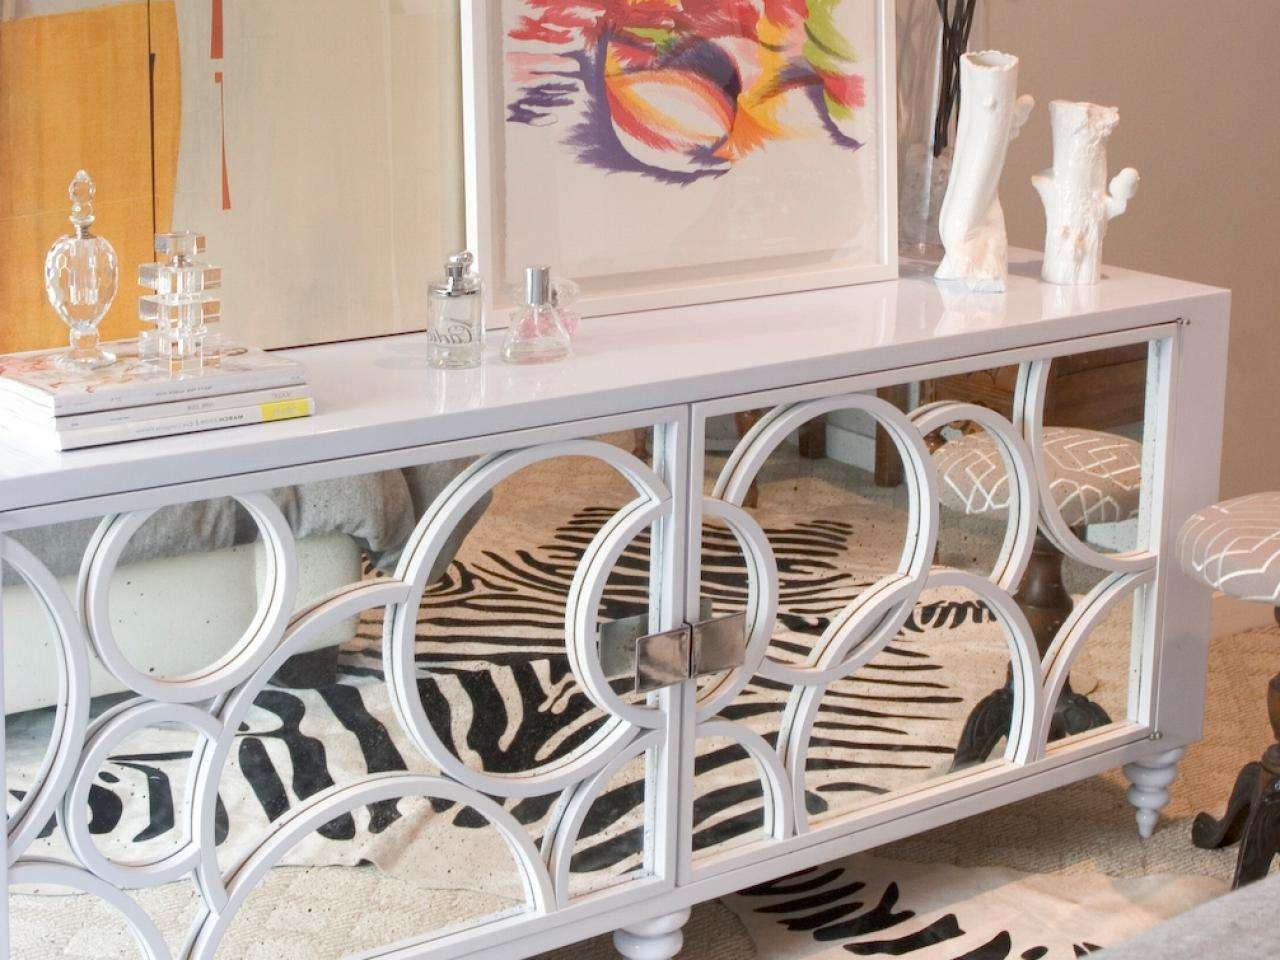 Mirrored Sideboard Home : Mirrored Sideboard: They Look So Intended For White Mirrored Sideboards (View 3 of 20)